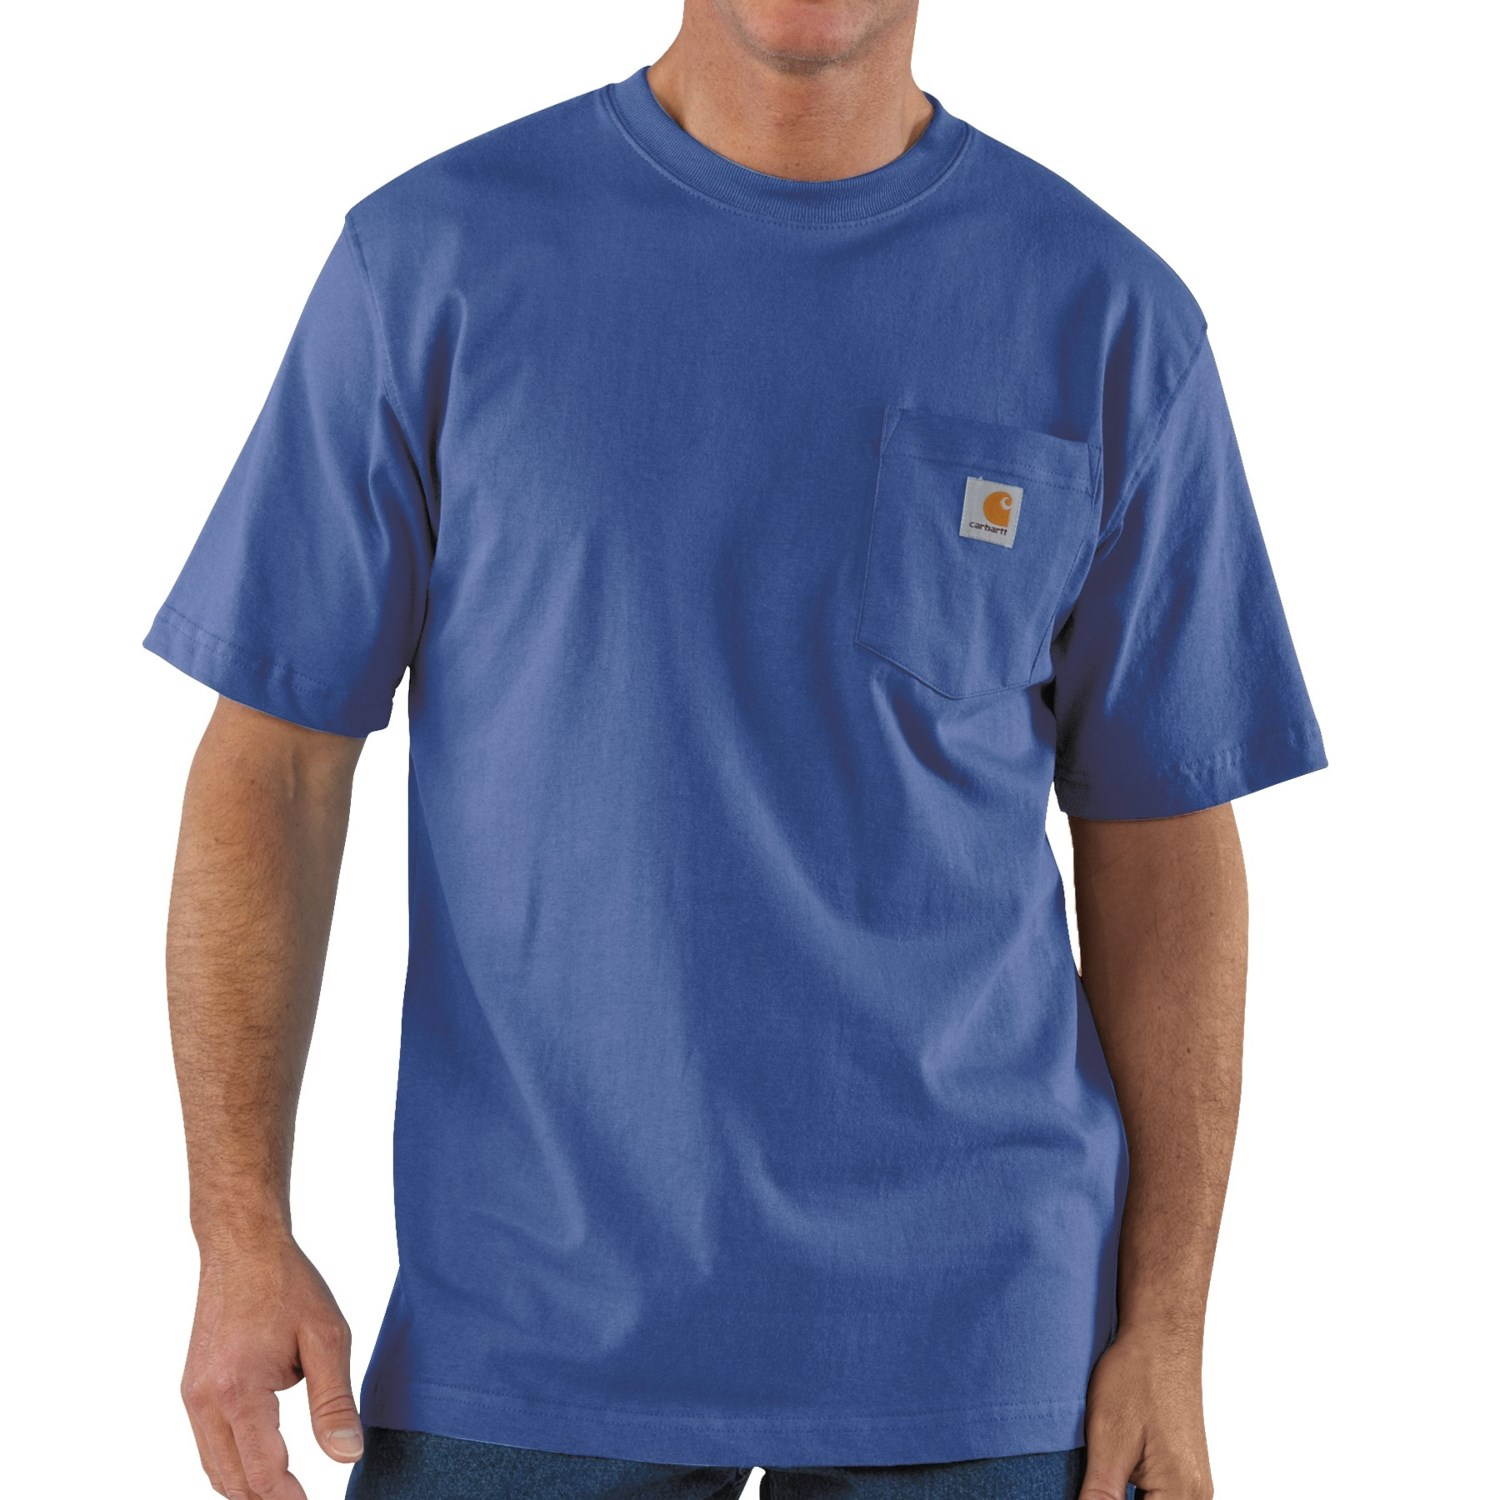 Top Carhartt Work Clothes For Men Images For Pinterest Tattoos